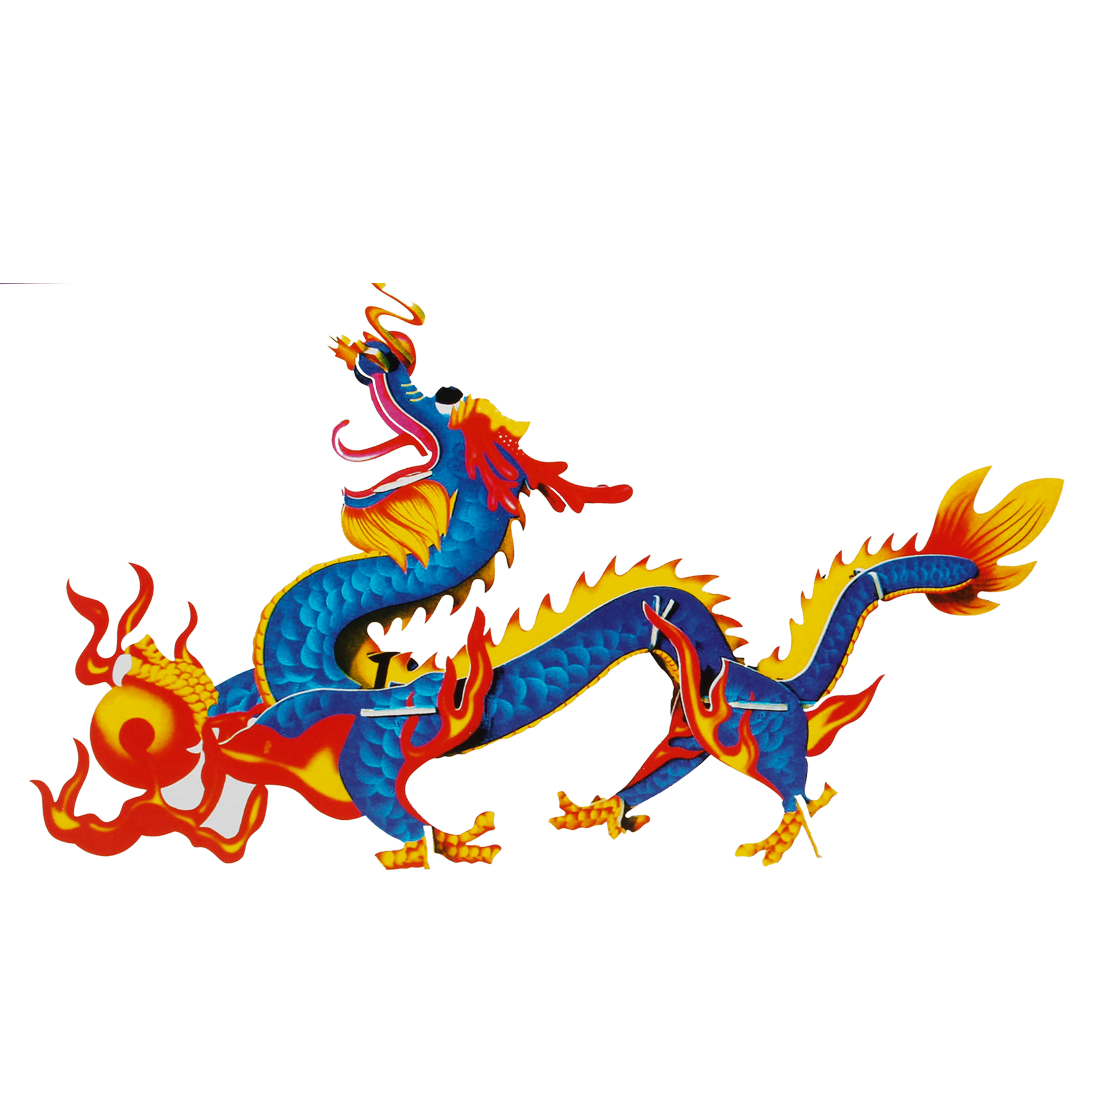 4 Sheets Lucky Chinese Dragon 3D Jigsaw Puzzles Toys for Kids